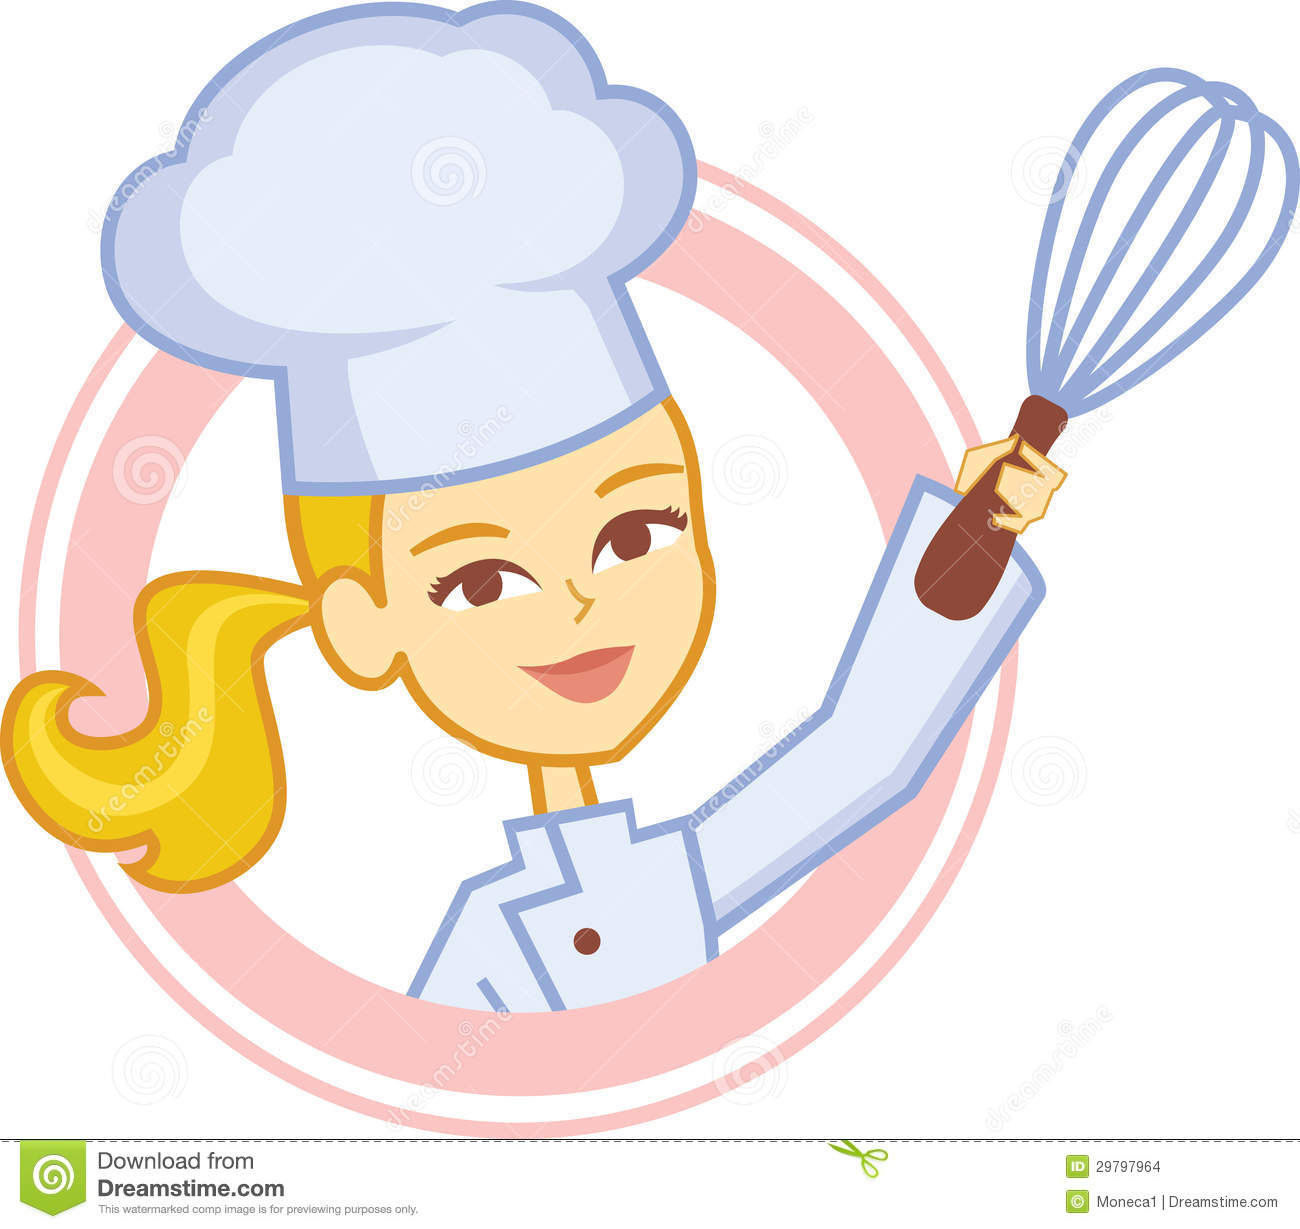 hight resolution of bakery culinary girl chef cartoon in logo style